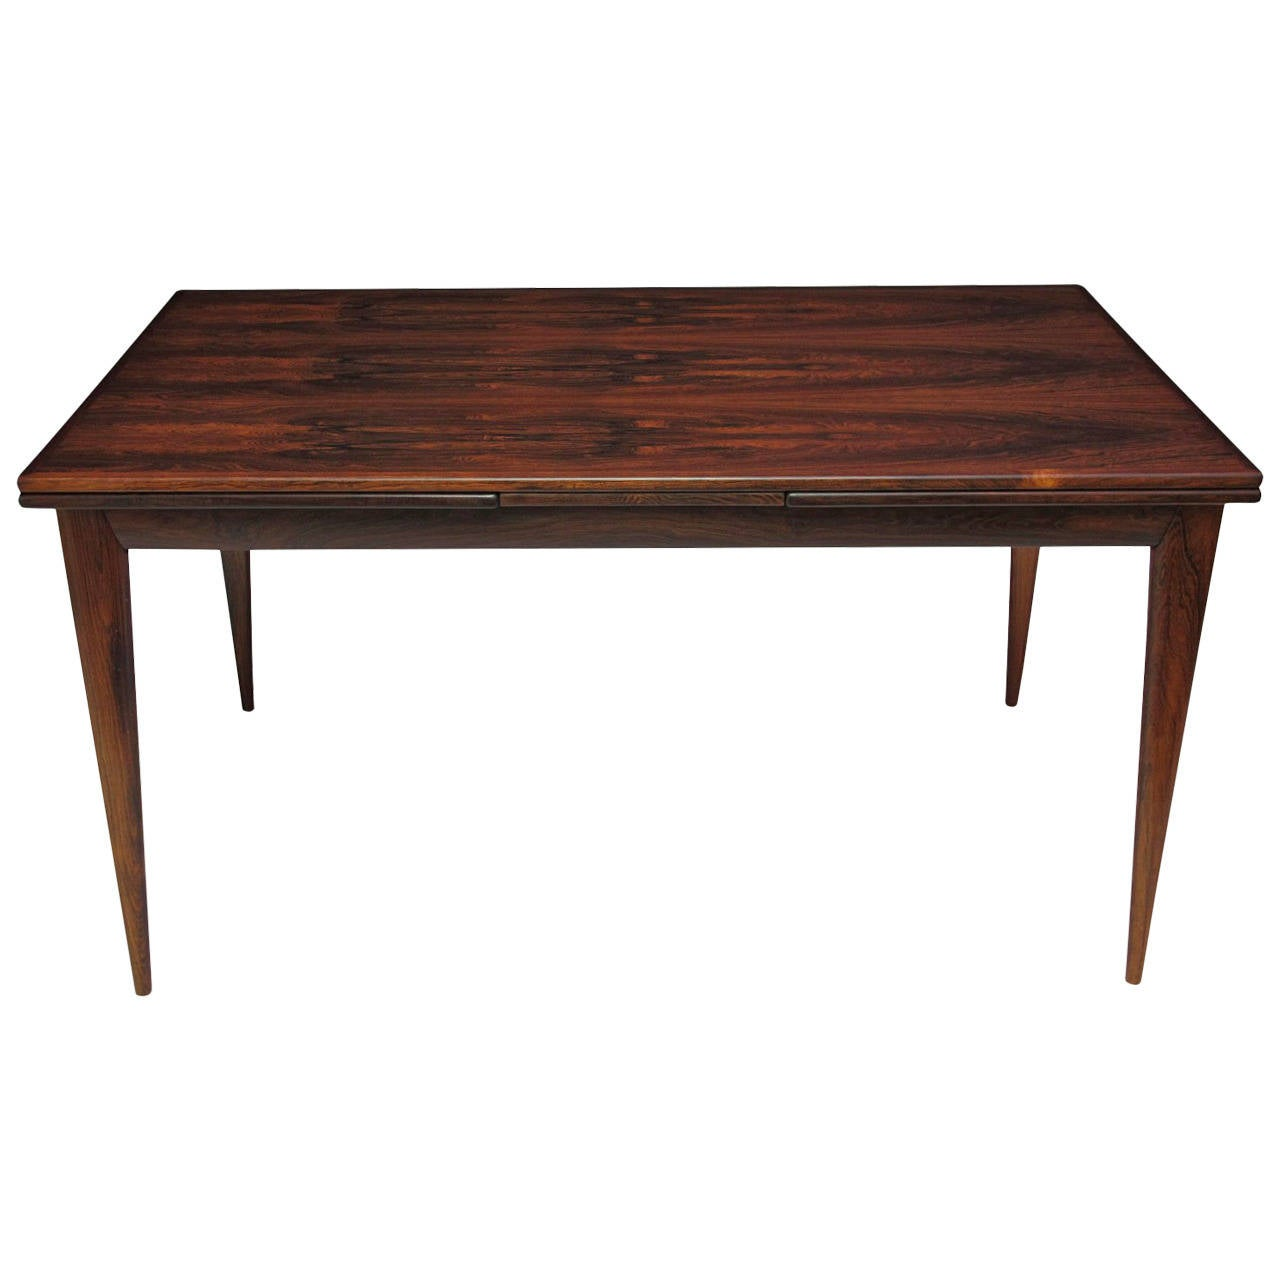 niels otto moller danish rosewood dining table at 1stdibs